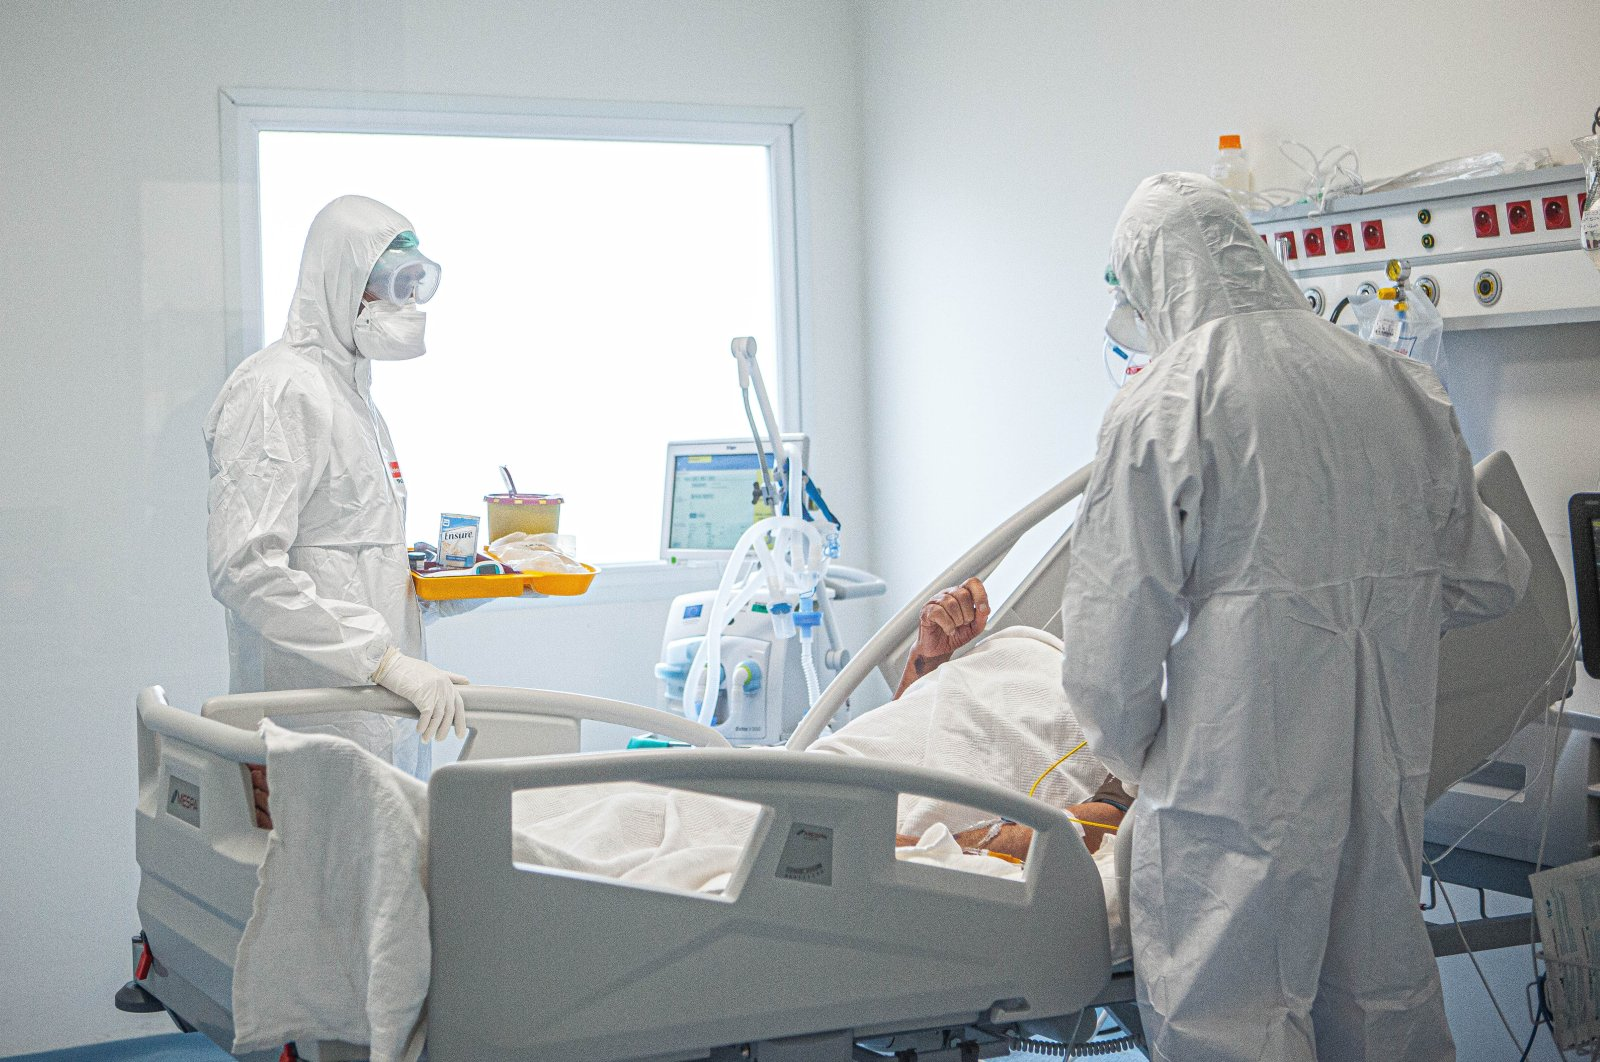 Health care workers attend a COVID-19 patient at a hospital, in Istanbul, Turkey, Oct. 8, 2020. (PHOTO BY HATİCE ÇINAR)